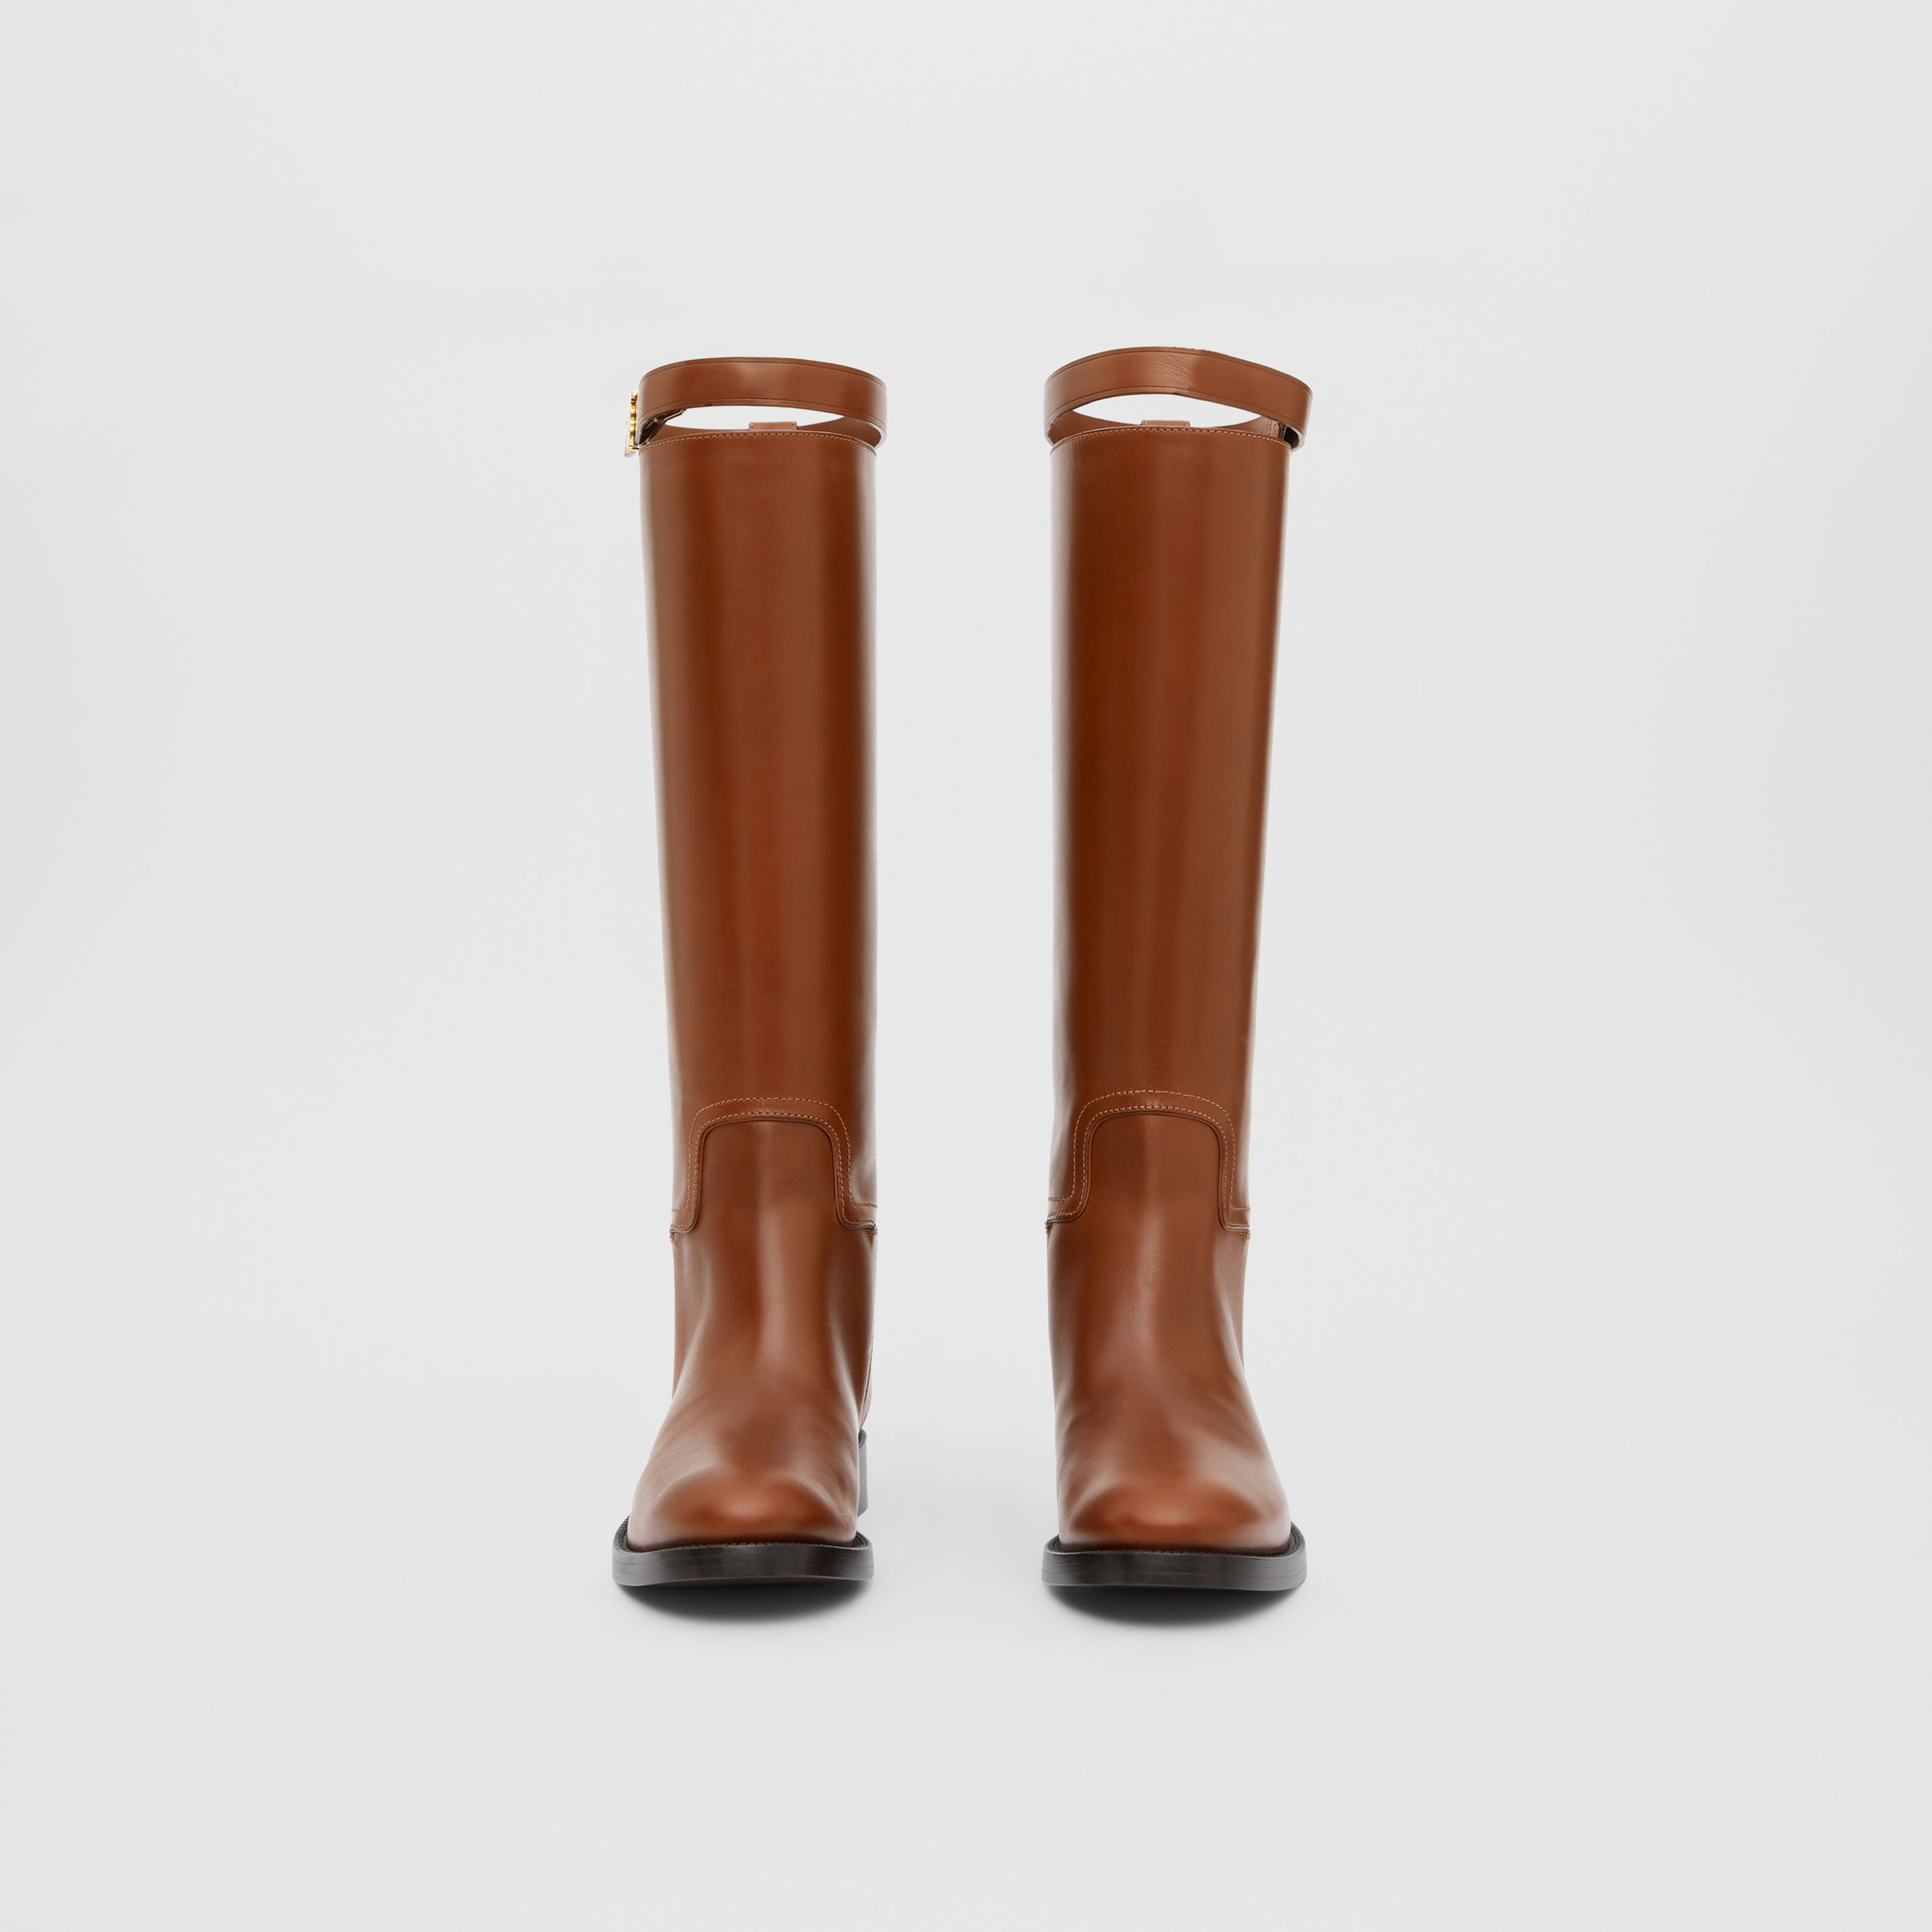 Monogram Motif Leather Knee-high Boots in Tan - Women | Burberry Singapore - 4